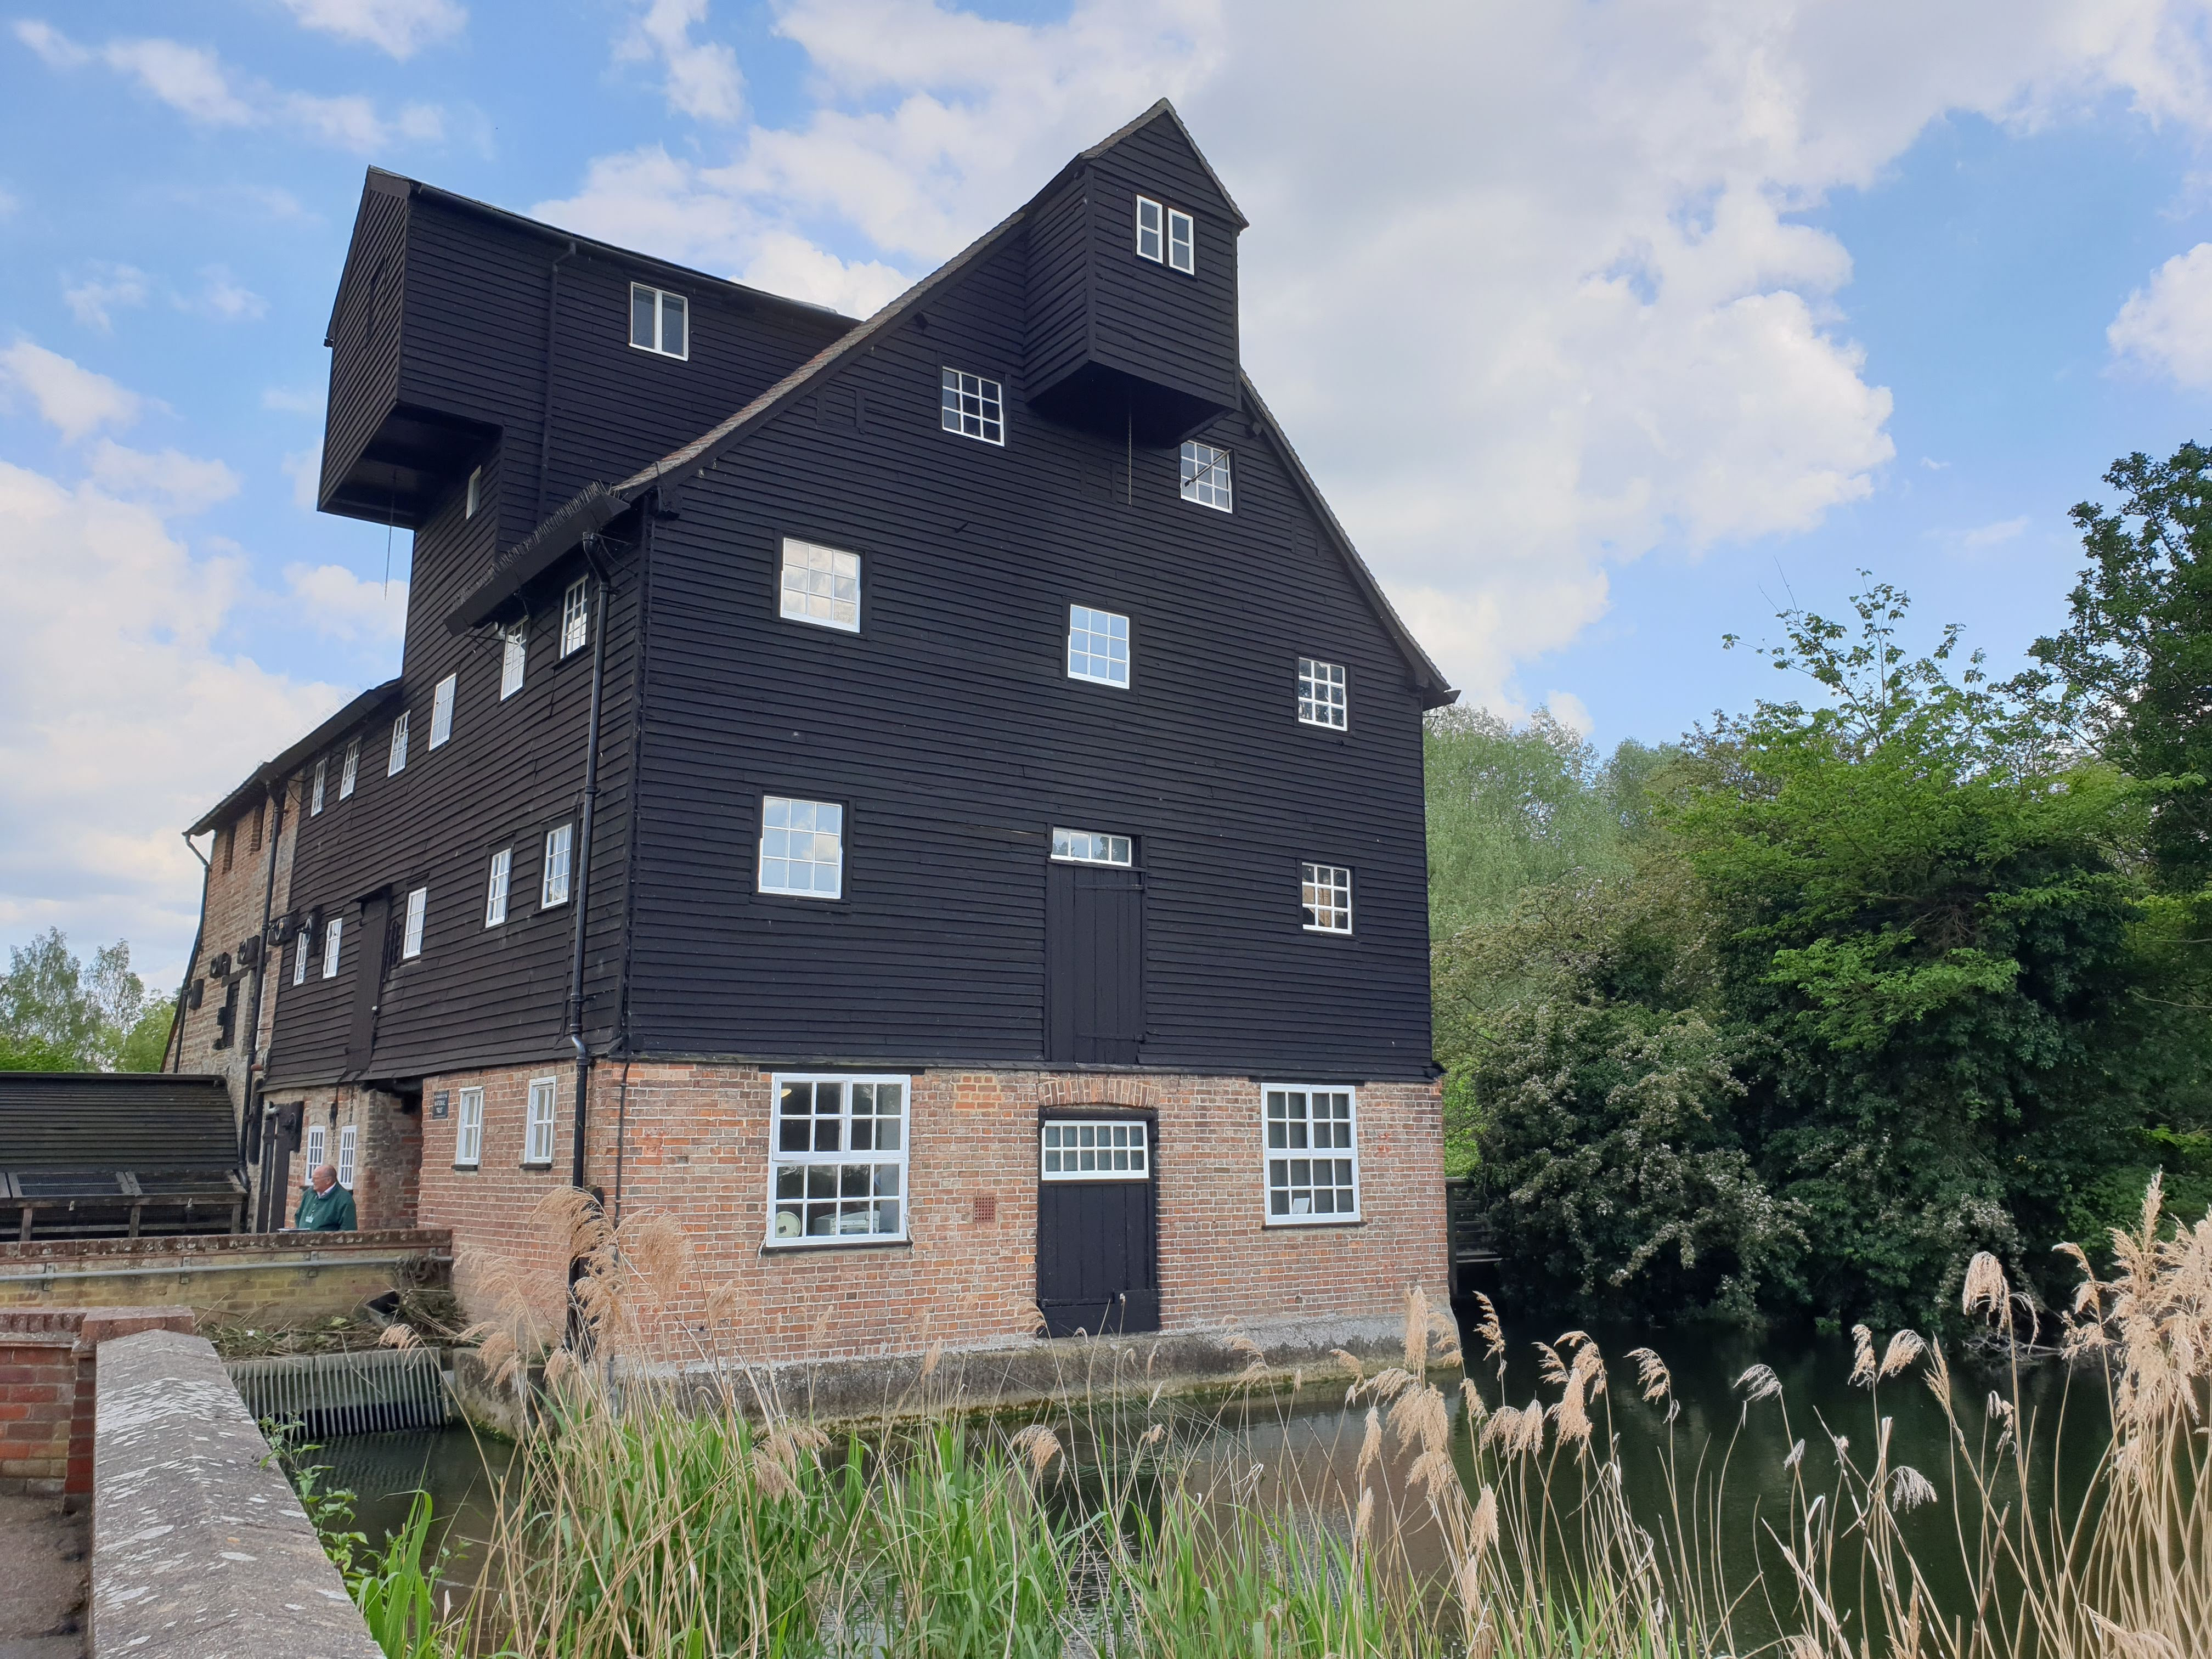 20190521 Houghton Mill_164846